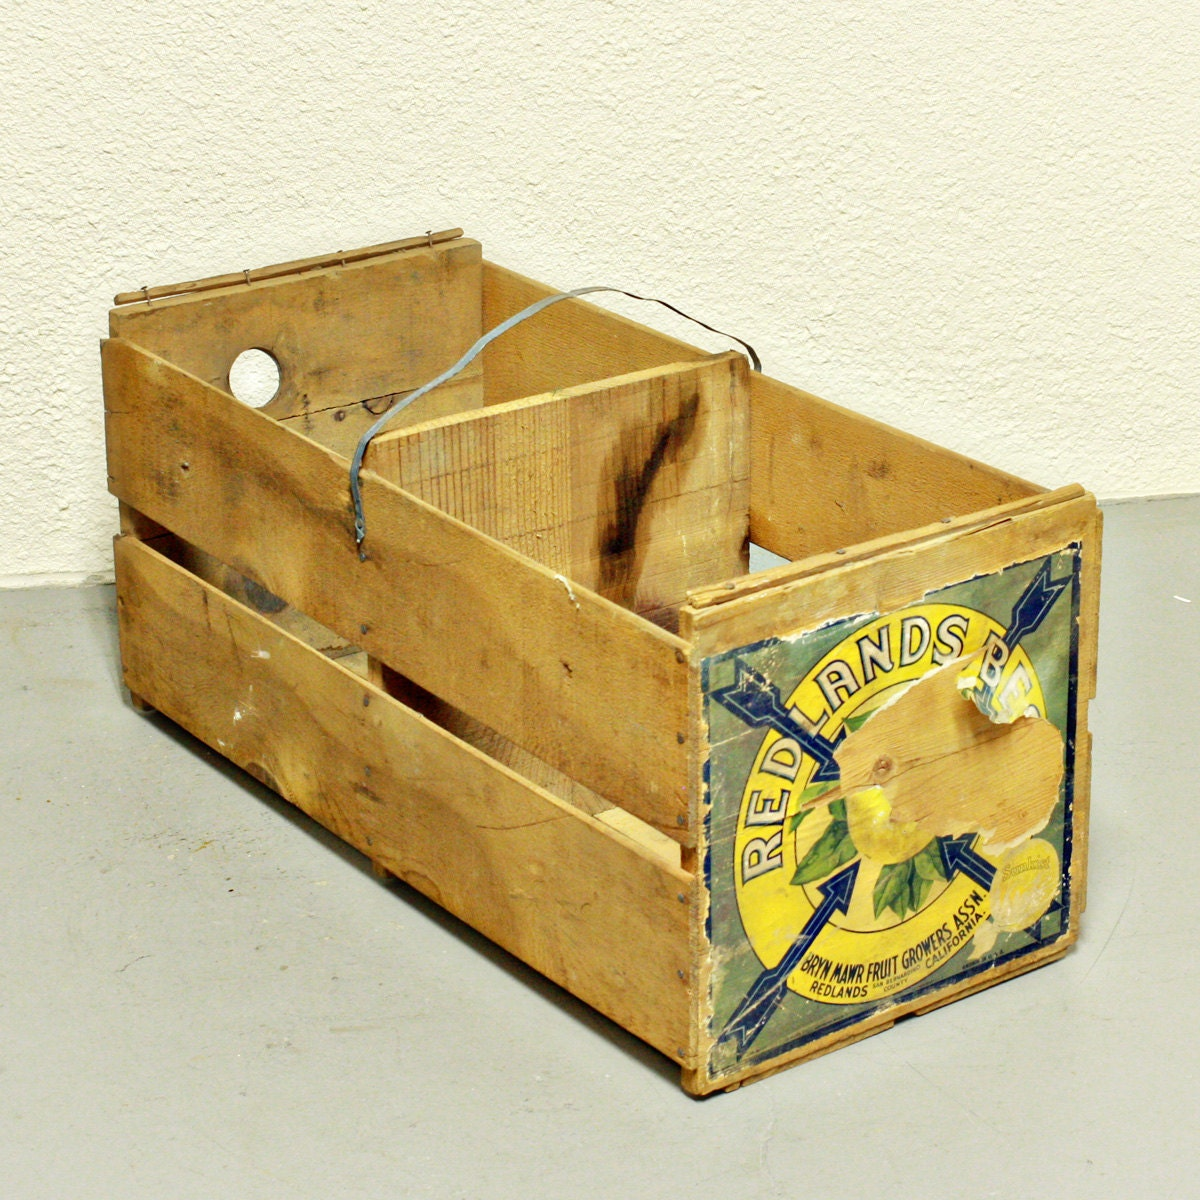 Vintage Wood Crate Orange Crate Produce Crate Redlands